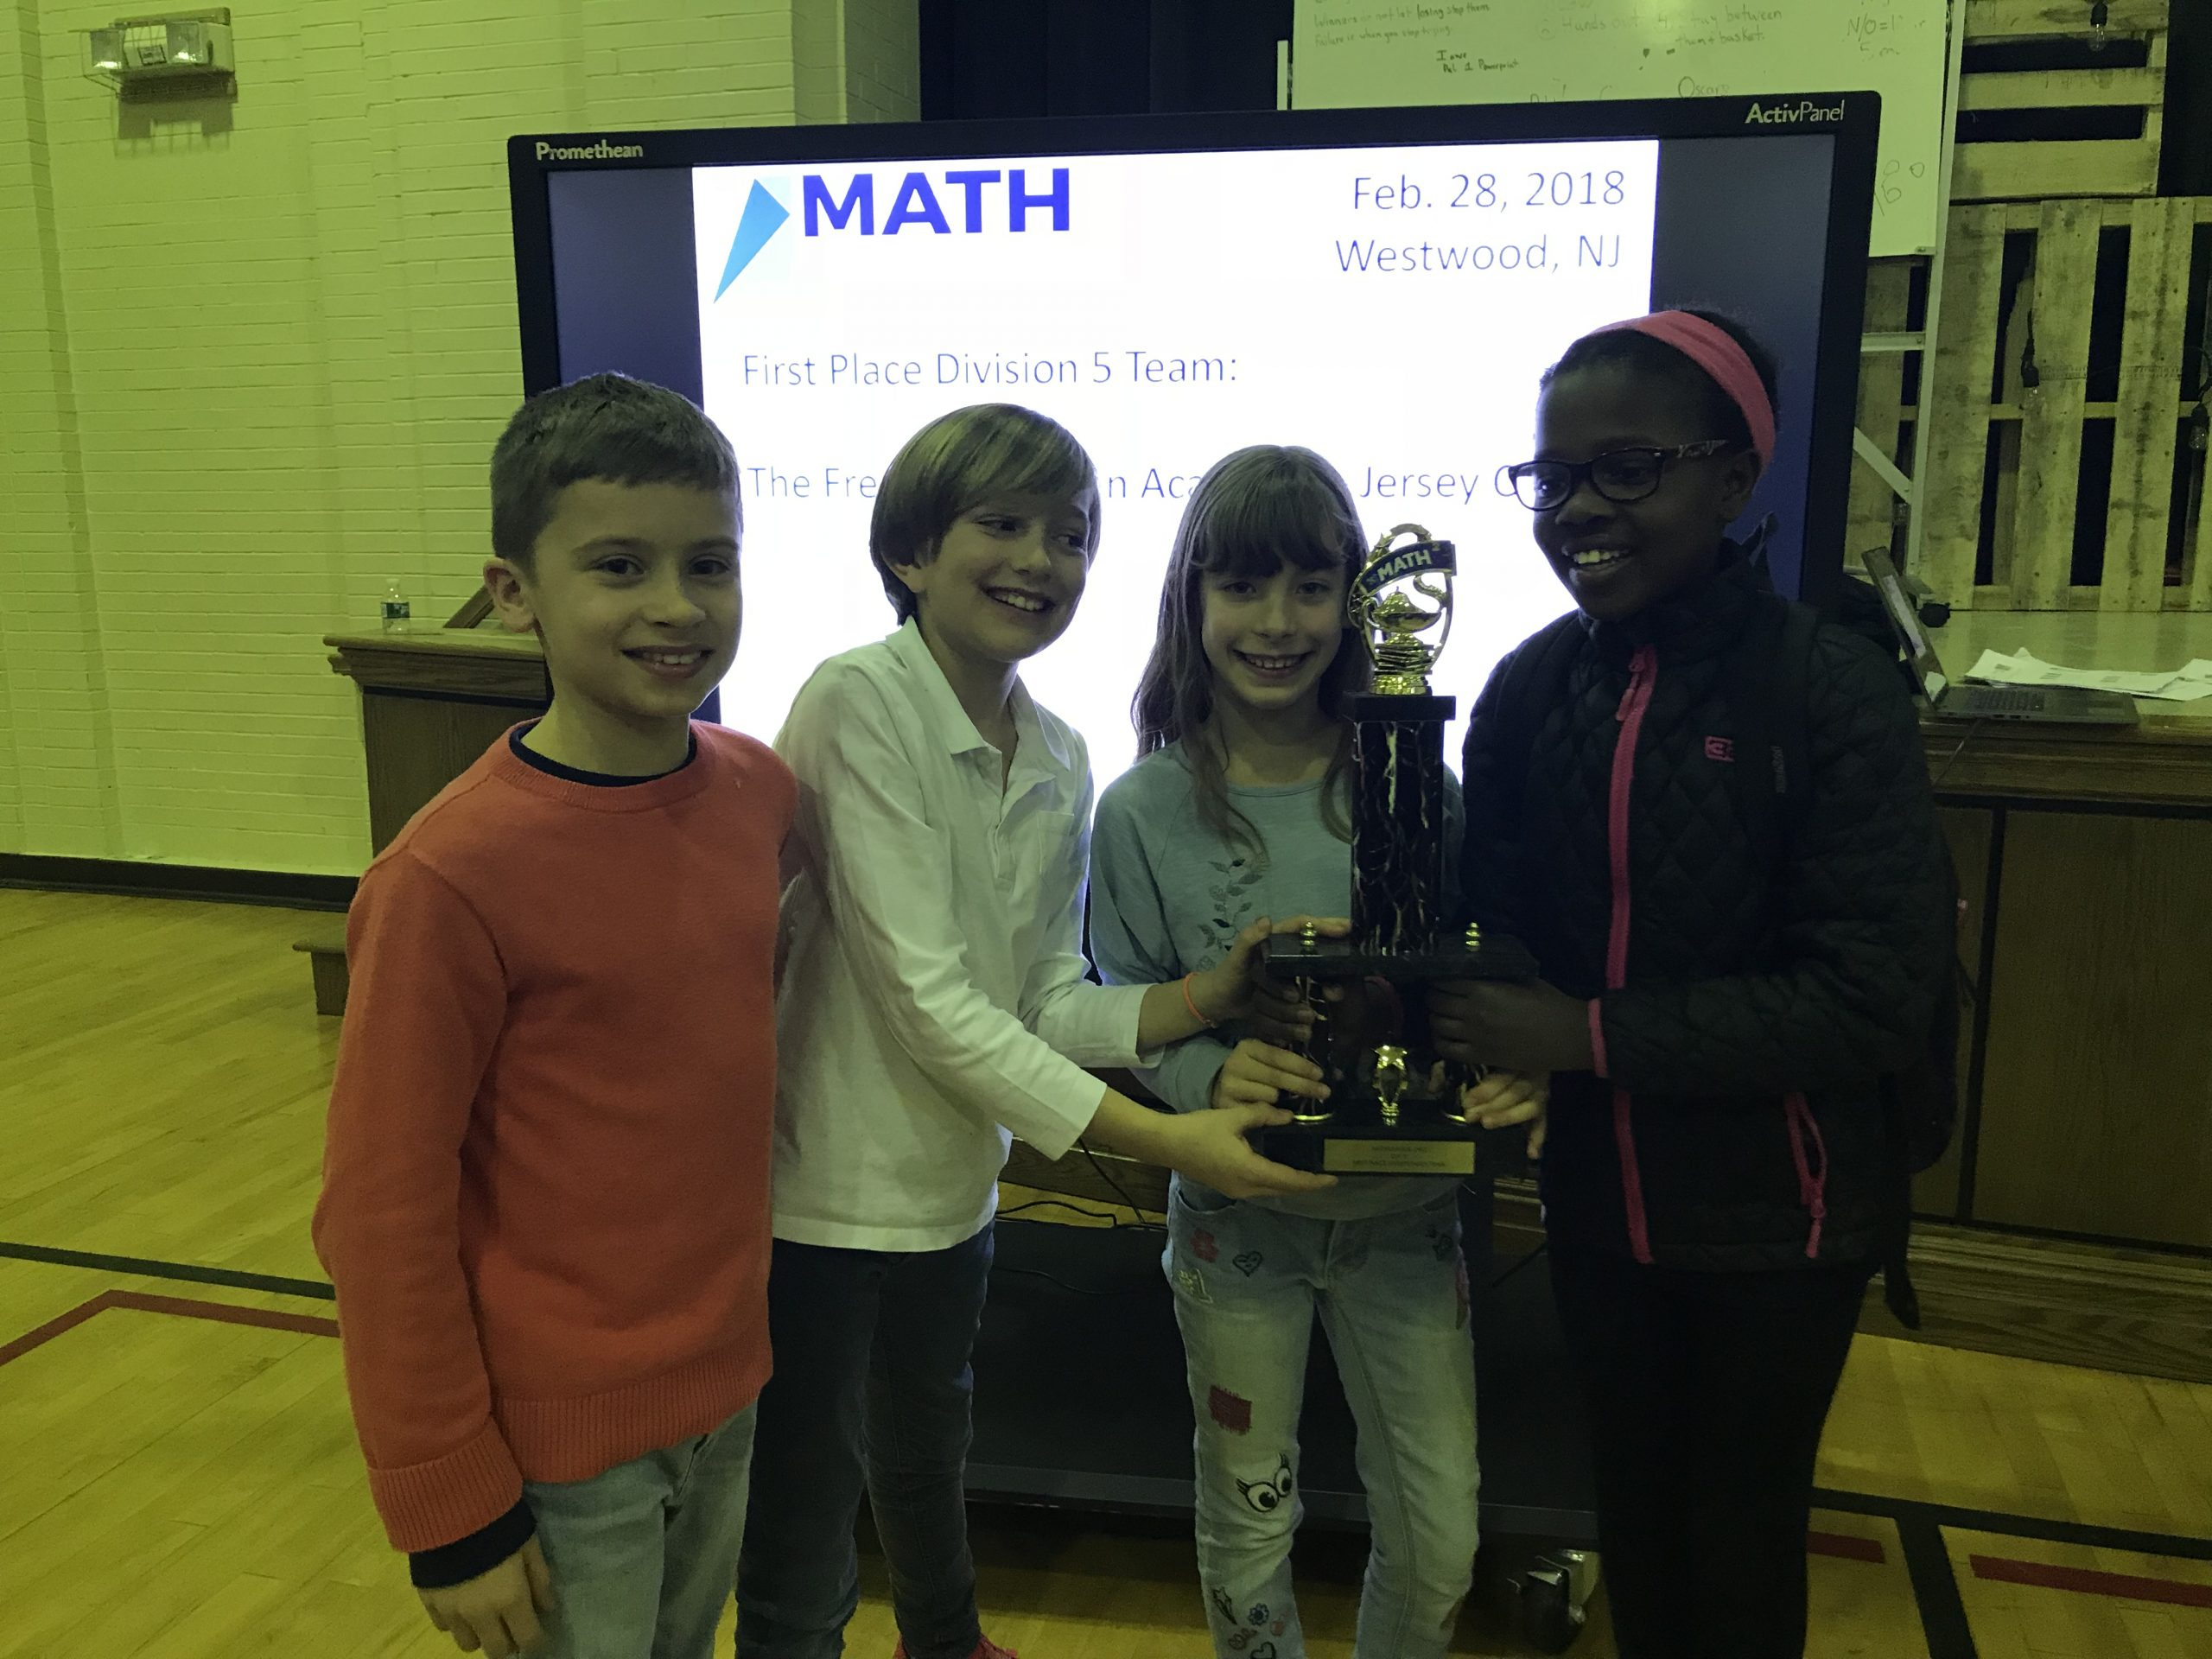 Elementary schoolers posing with their trophy after a win in a math competition